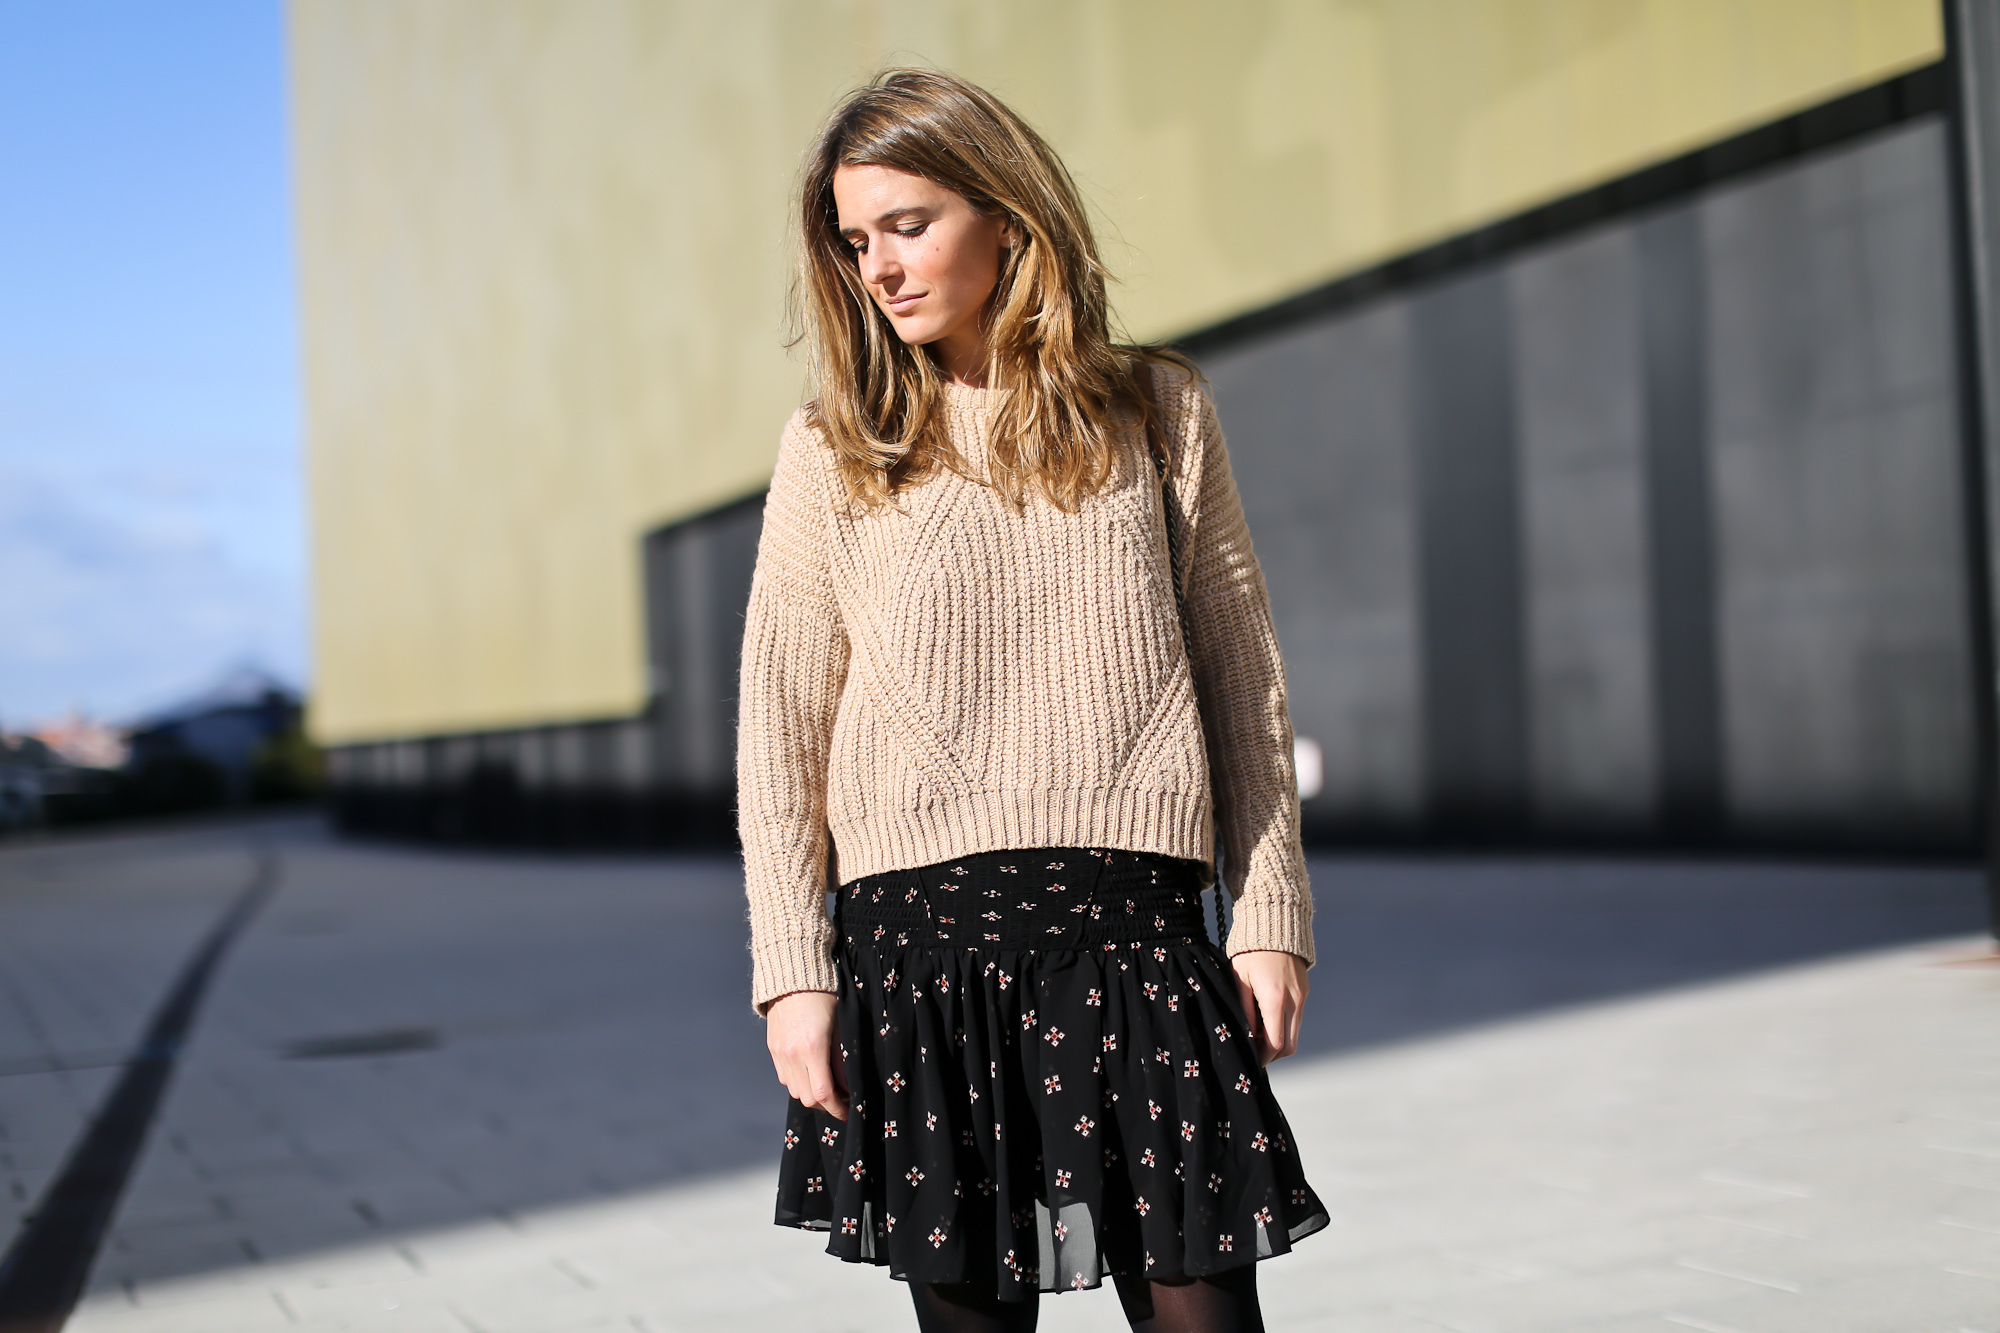 Clochet_streetstyle_majejouetjupe_chicwish_chunky_knit_isable_marant_dicker_boots_-7